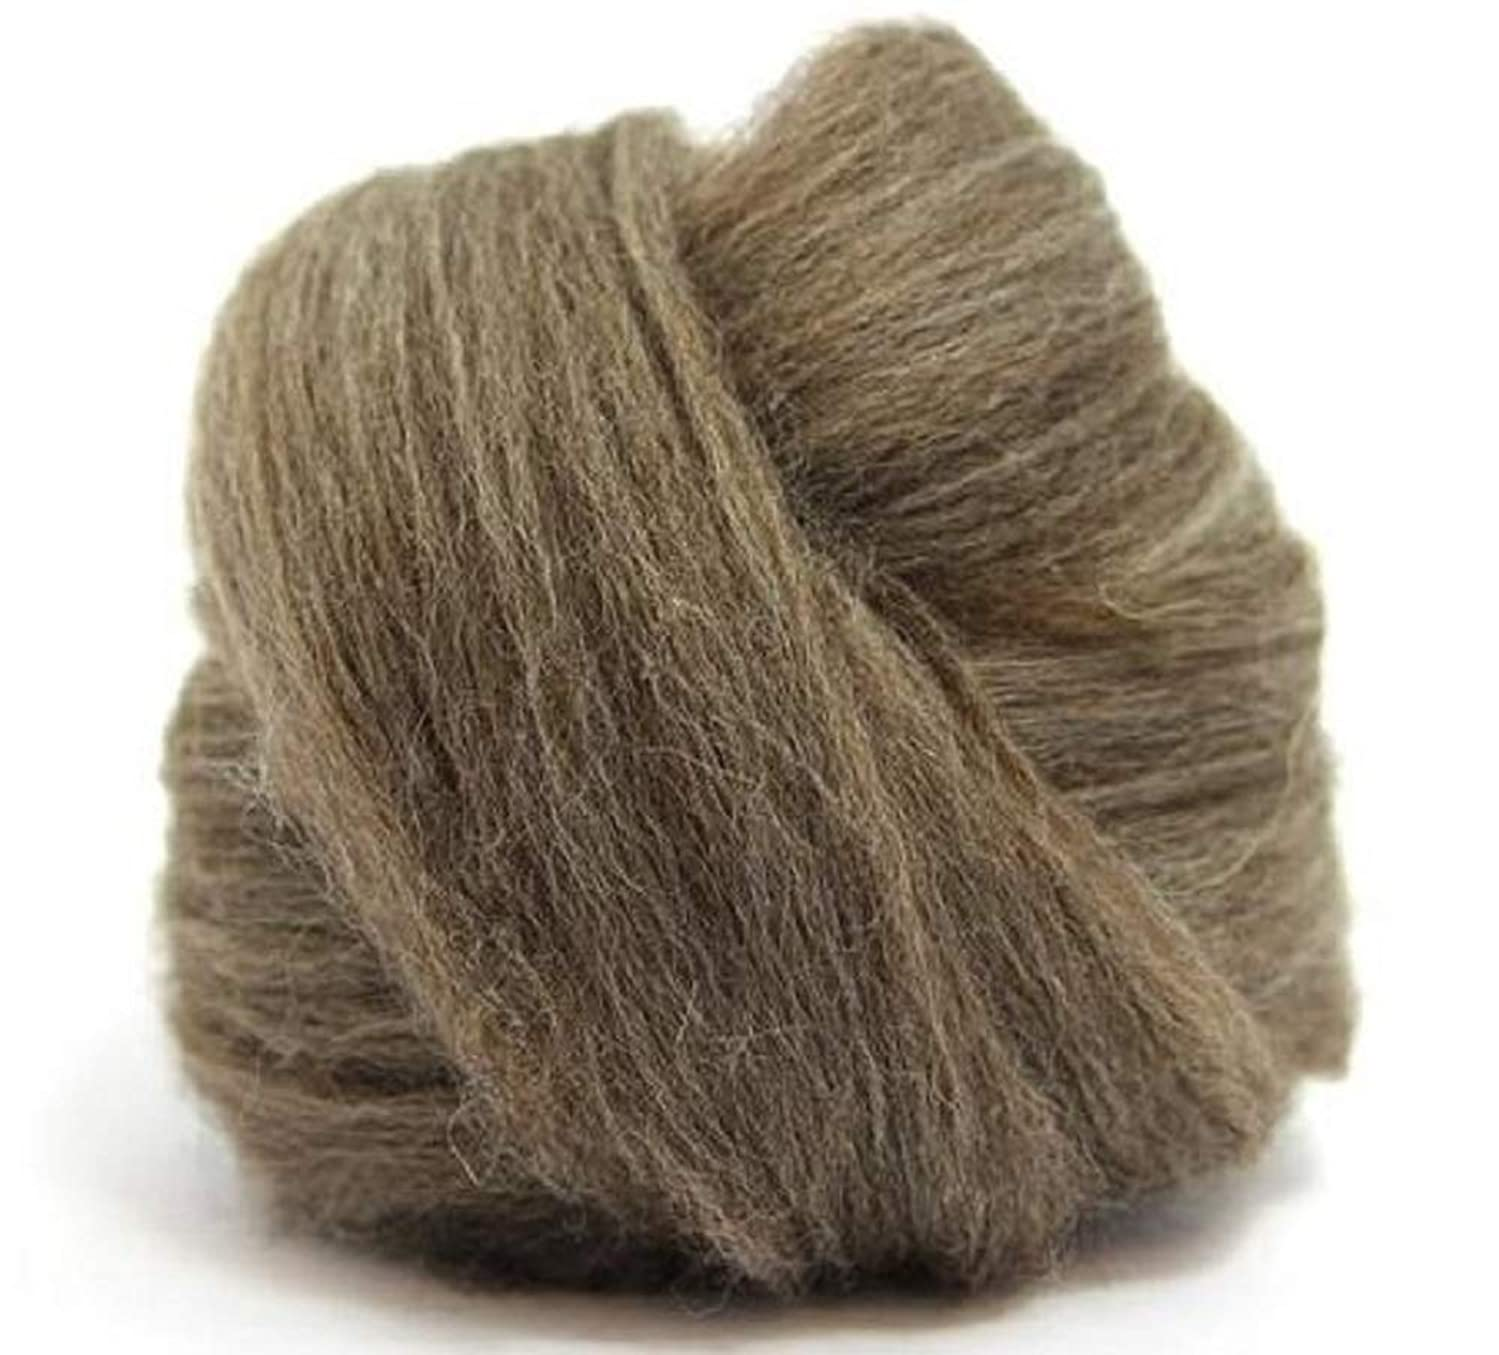 4 oz Paradise Fibers Blue Faced Leicester Roving - Brown - Perfect for Woolen Yarn & Needle Felting